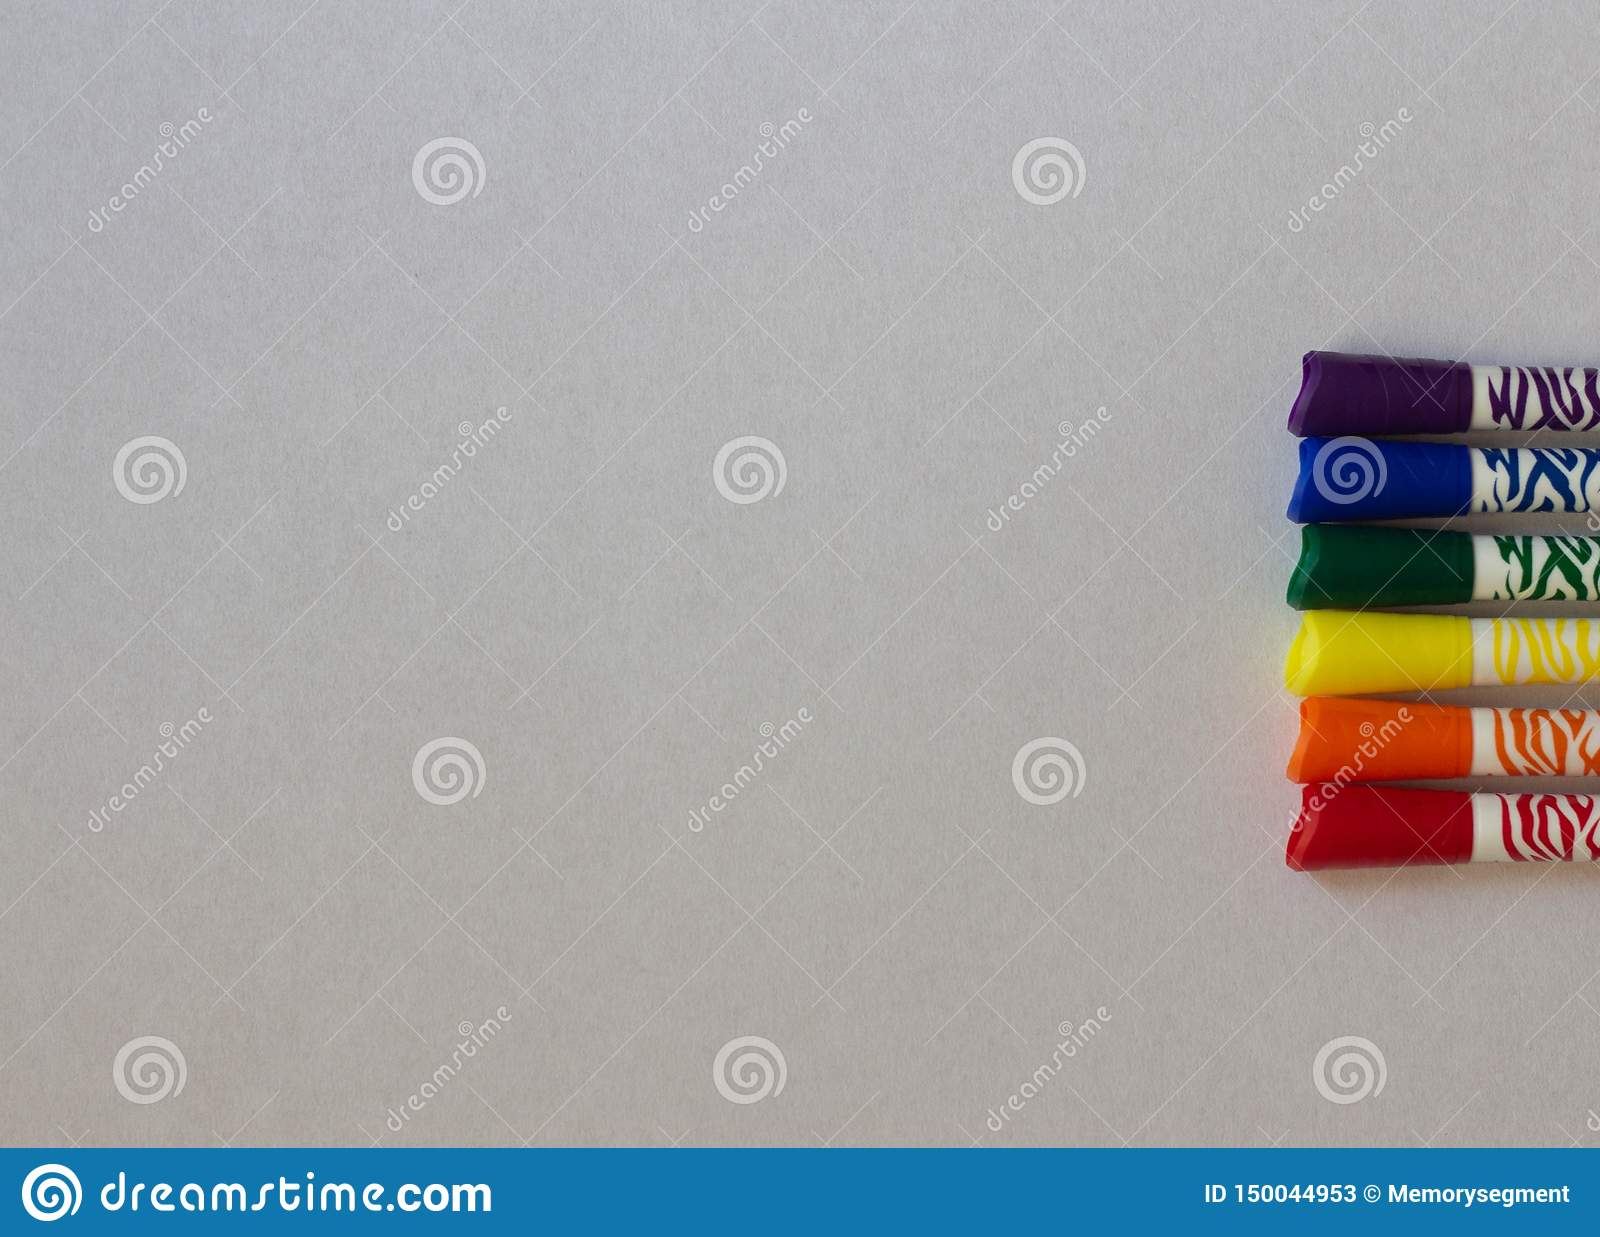 Colored LGBT markers on a white background close-up